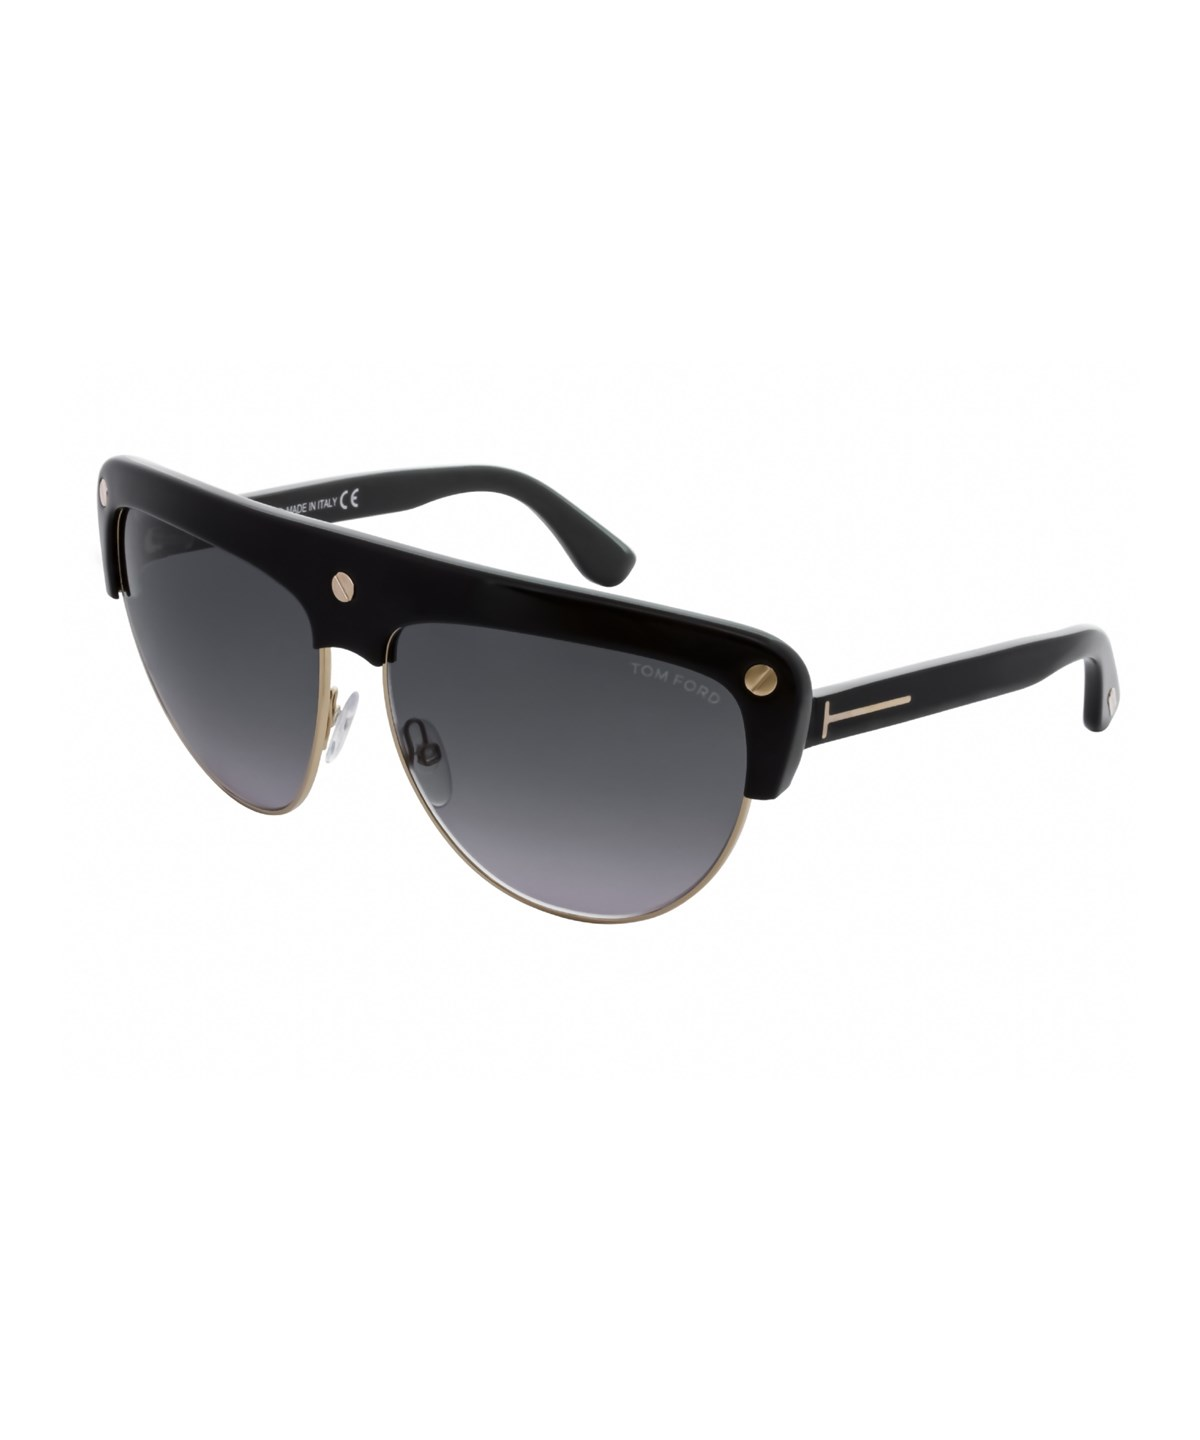 Tom Ford Ft0318 Liane 01B In Shiny Black  / Gradient Smoke